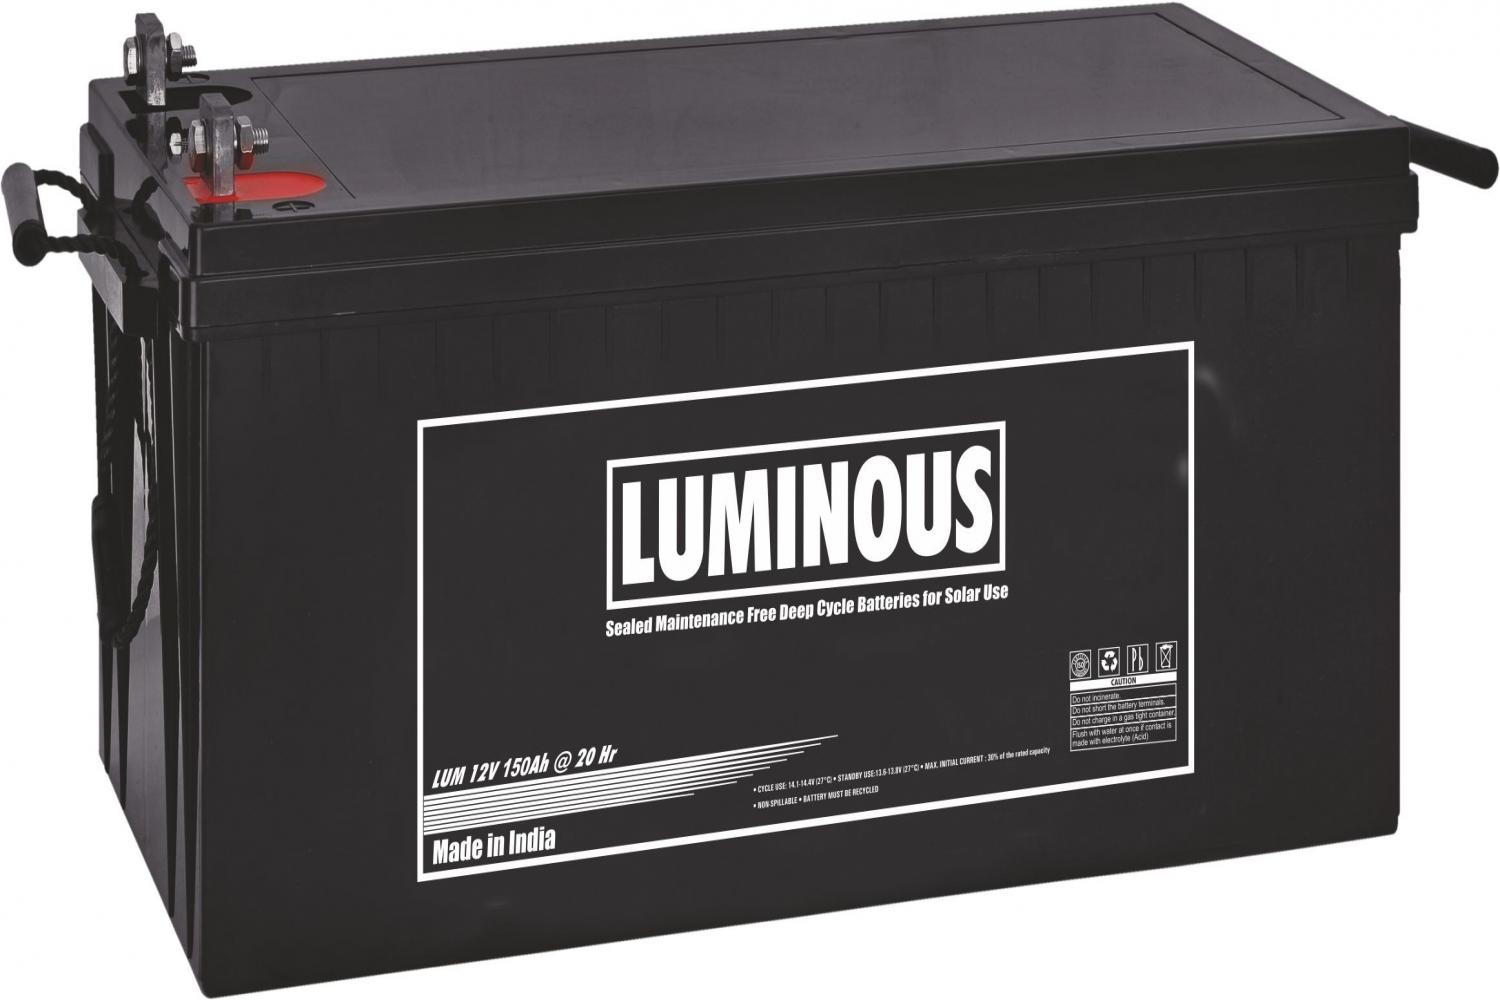 Solar Battery Luminous Solar Battery 150ah Price